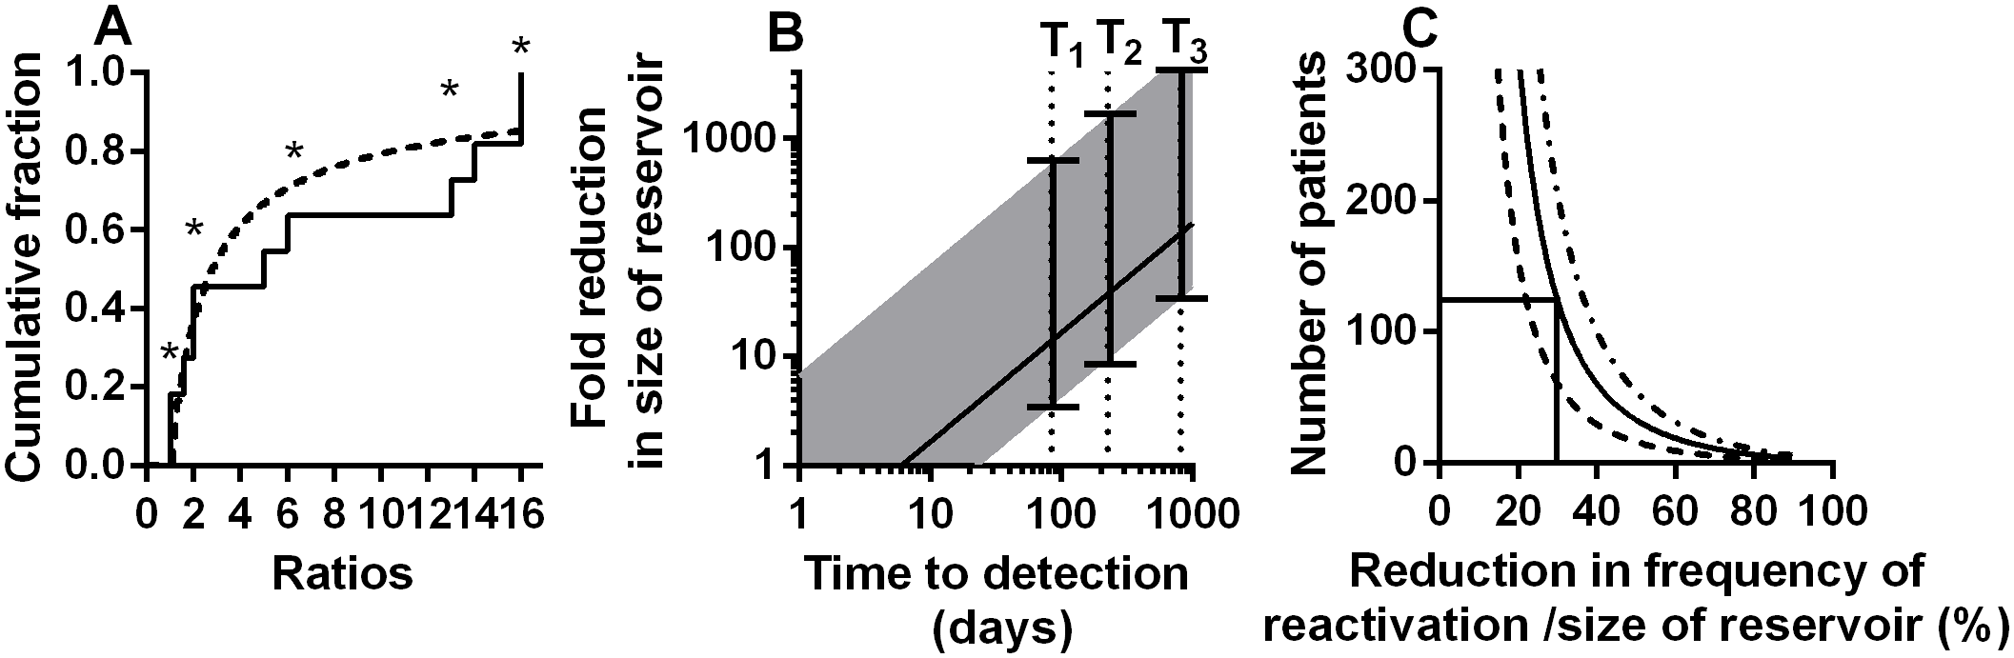 Modelling of kinetics of time-to-detection: